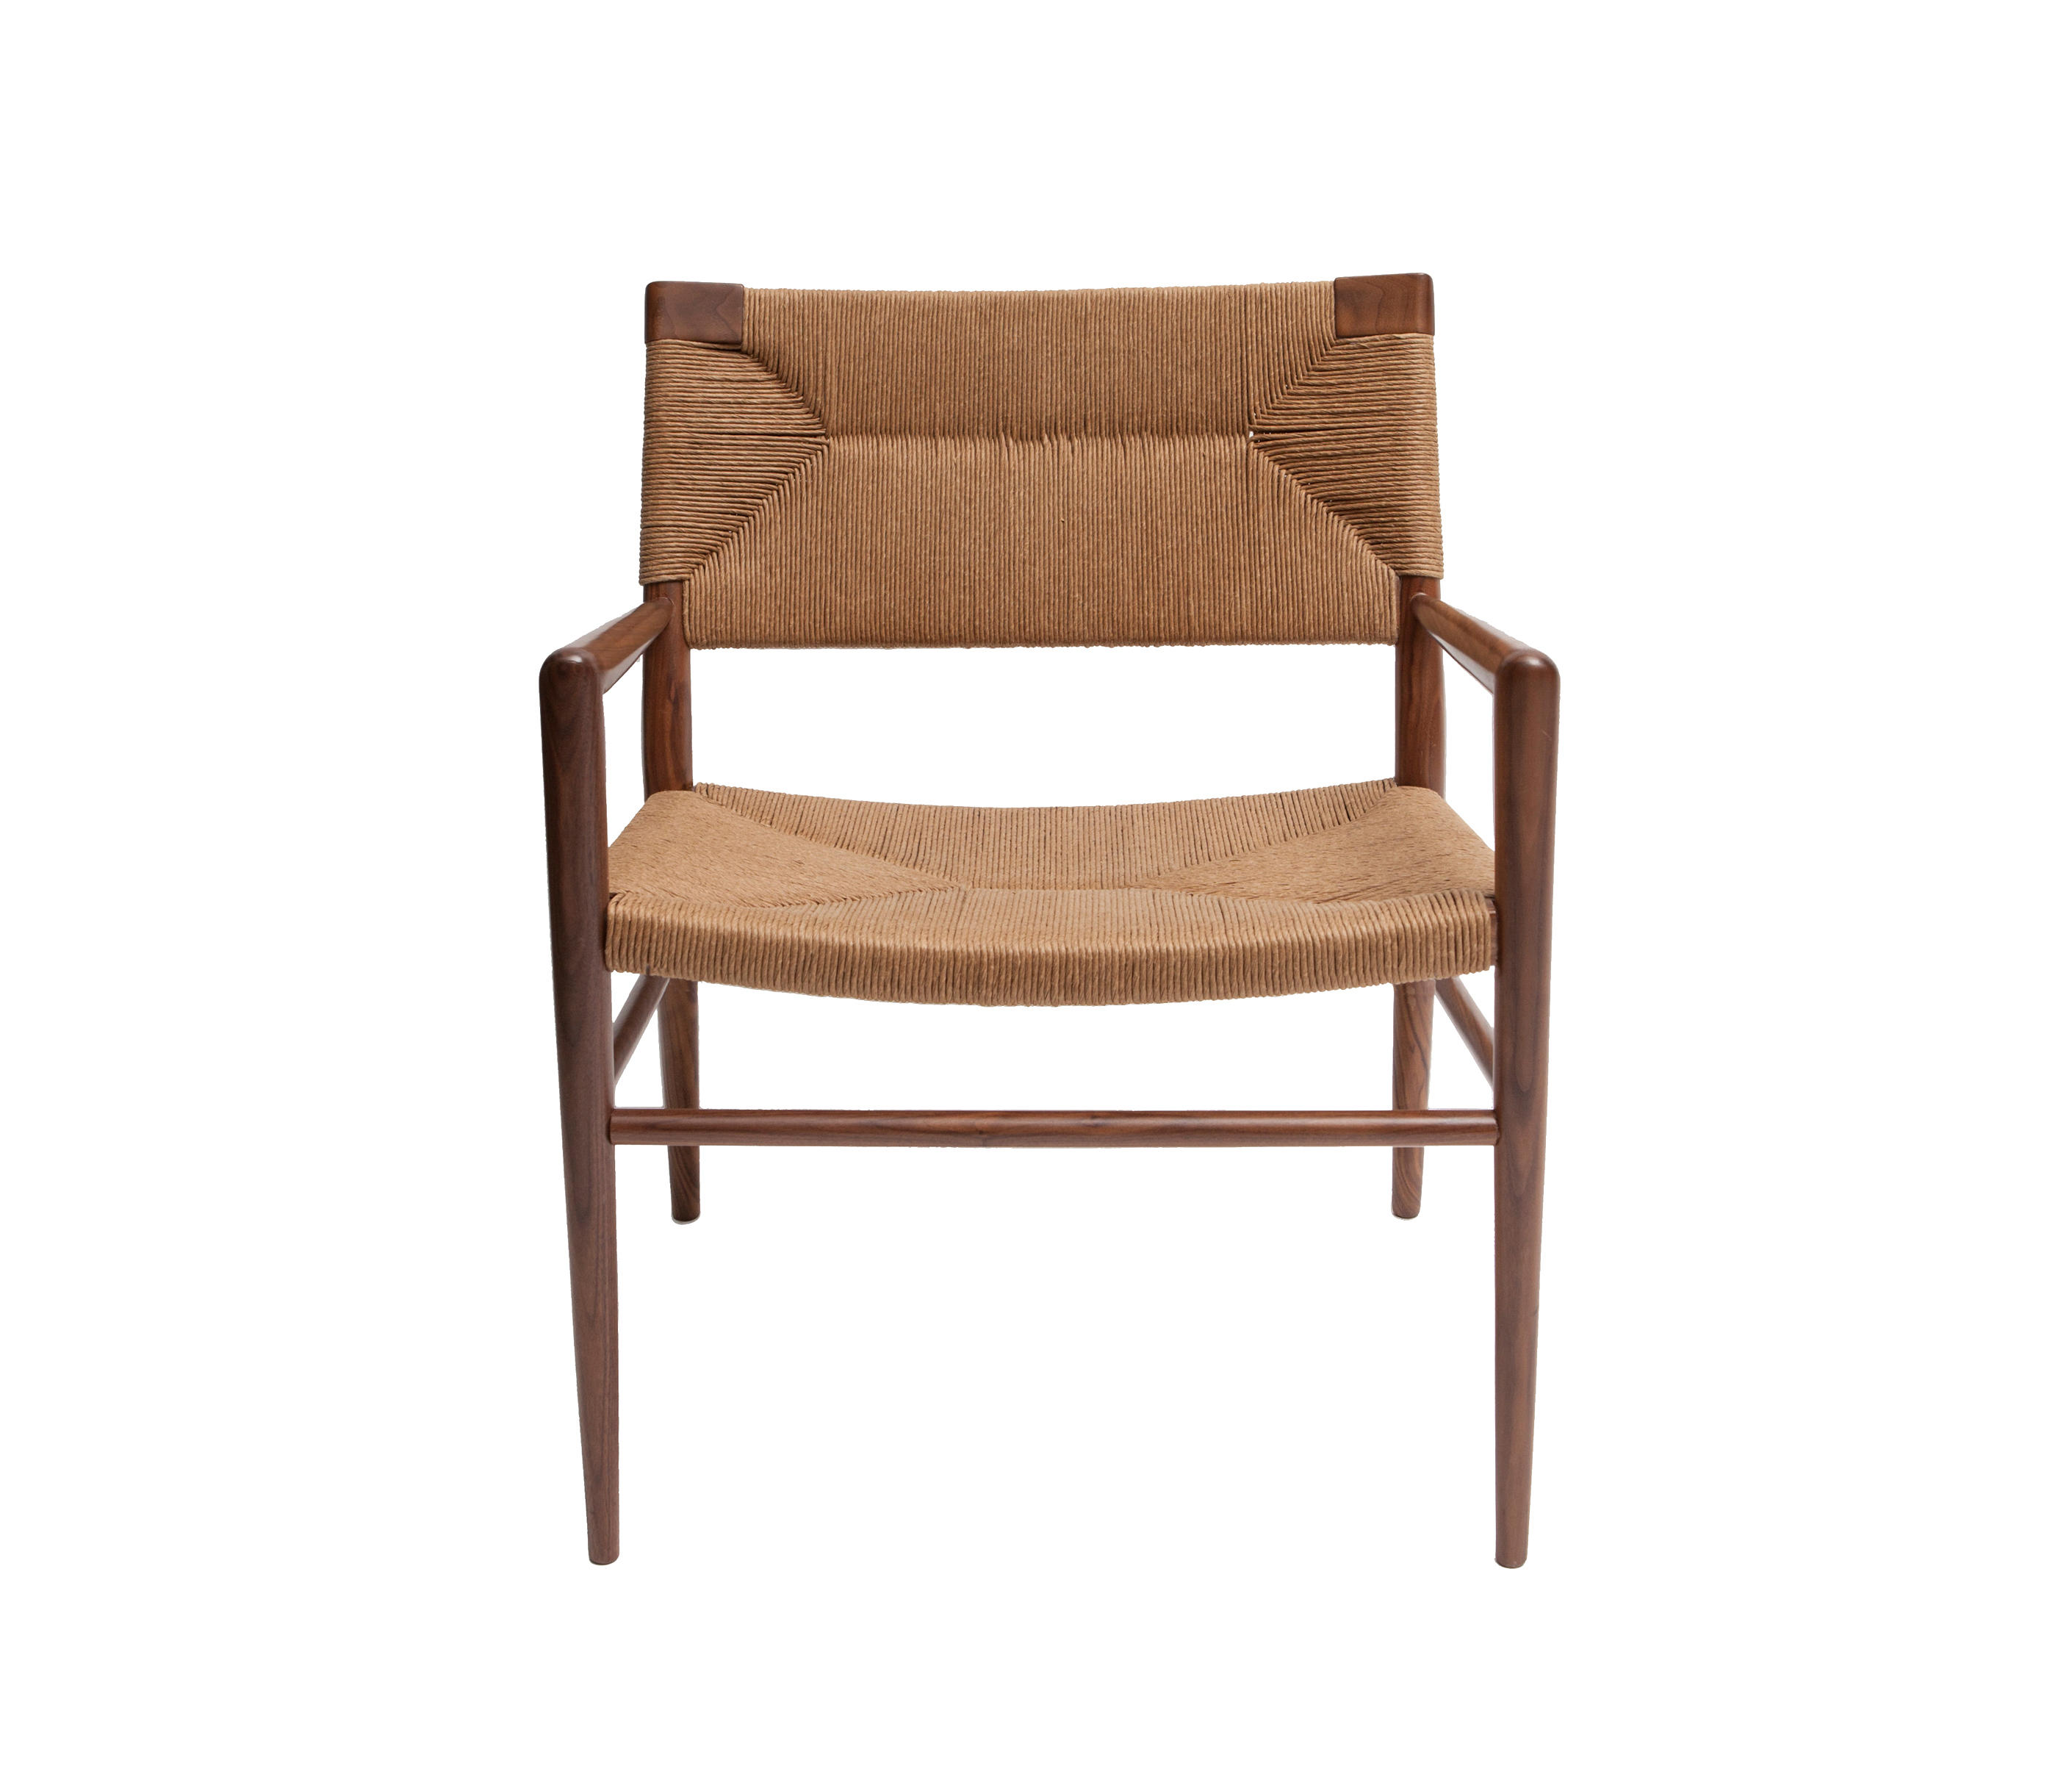 Woven Rush Lounge Chair Chairs From Smilow Design